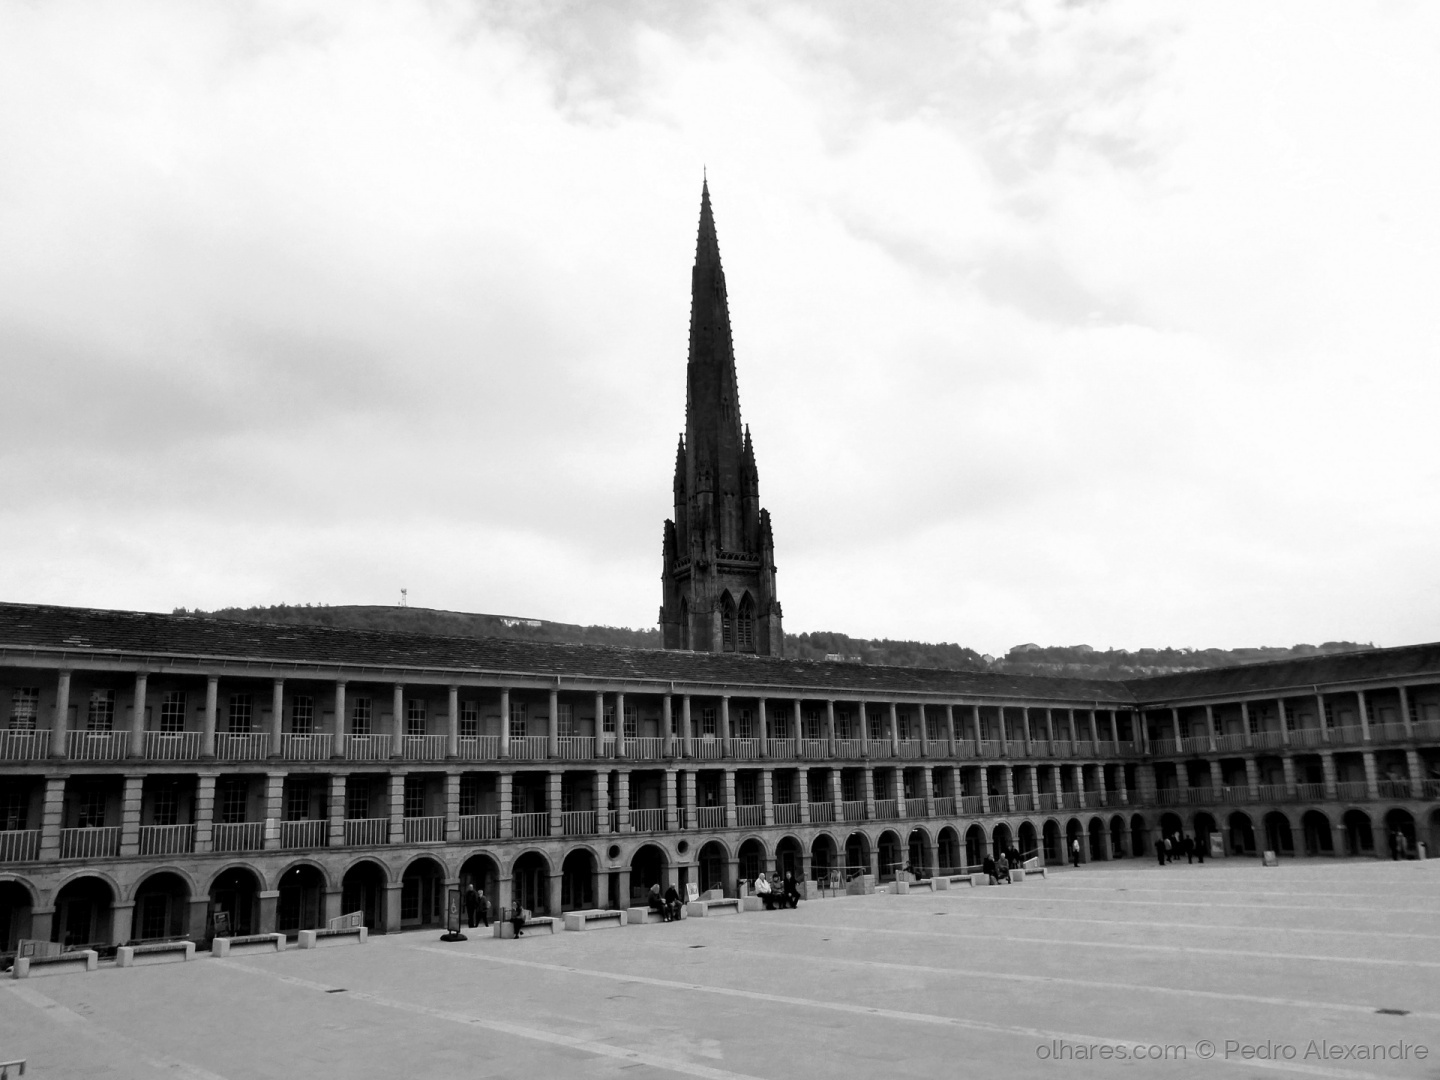 Gentes e Locais/The Piece Hall